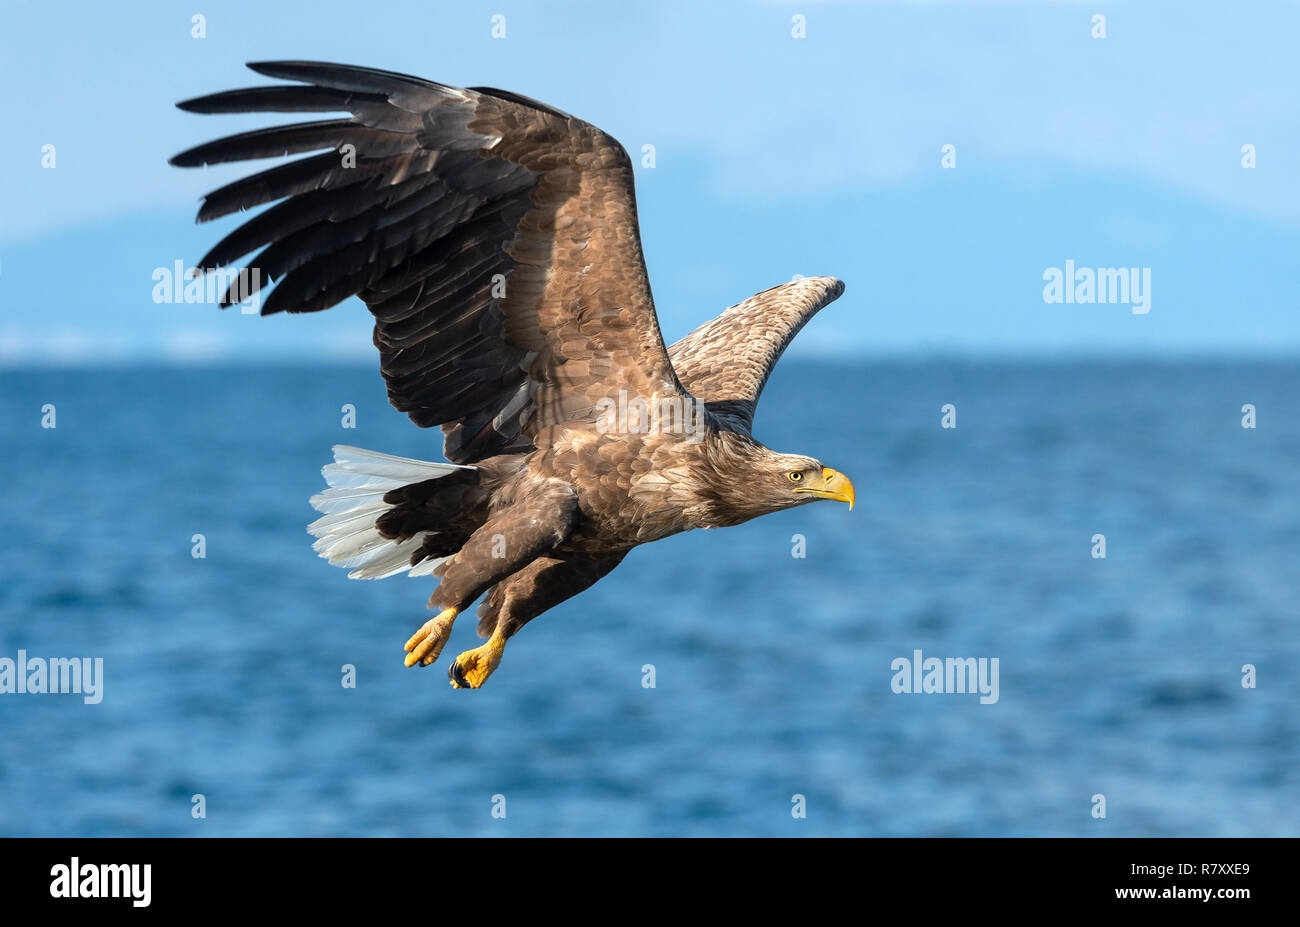 Adult White-tailed eagles fishing. Blue Ocean  background. Scientific name: Haliaeetus albicilla, also known as the ern, erne, gray eagle, Eurasian se Stock Photo